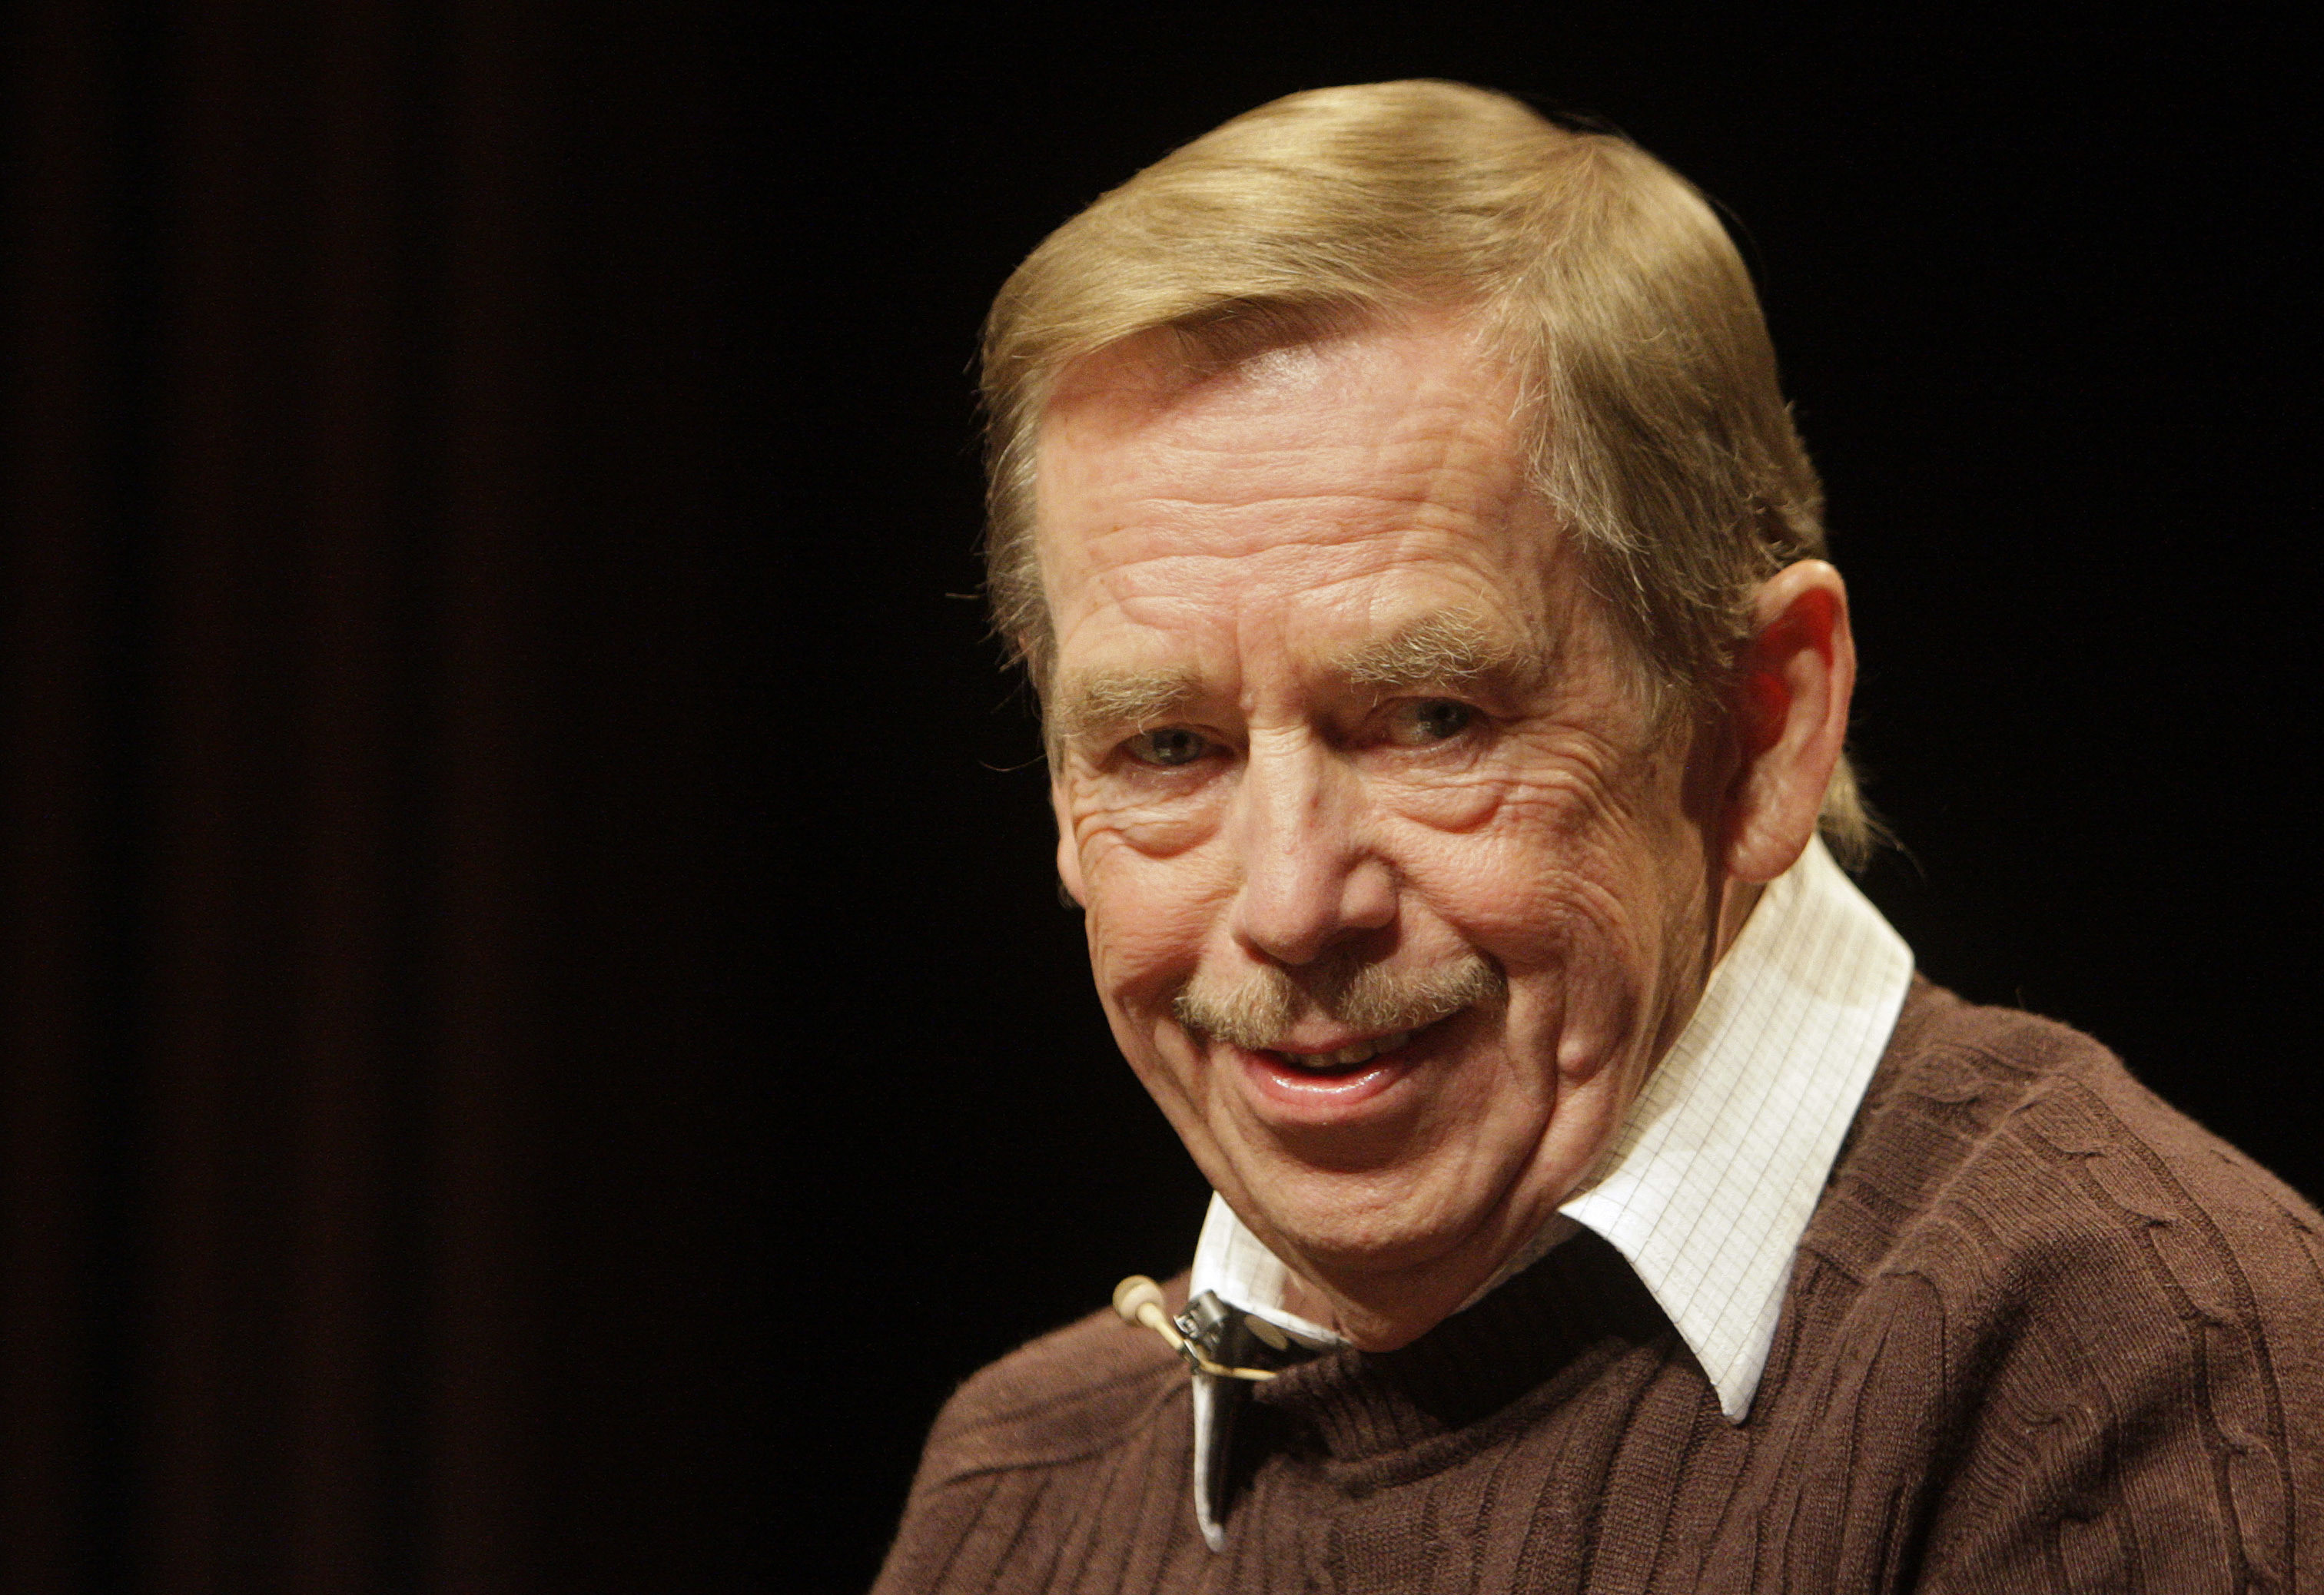 Former Czech Republic President Vaclav Havel smiles as he attends a news conference to mark the 20th anniversary of political changes in former Czechoslovakia and the fall of the Iron Curtain in Prague October 15, 2009.